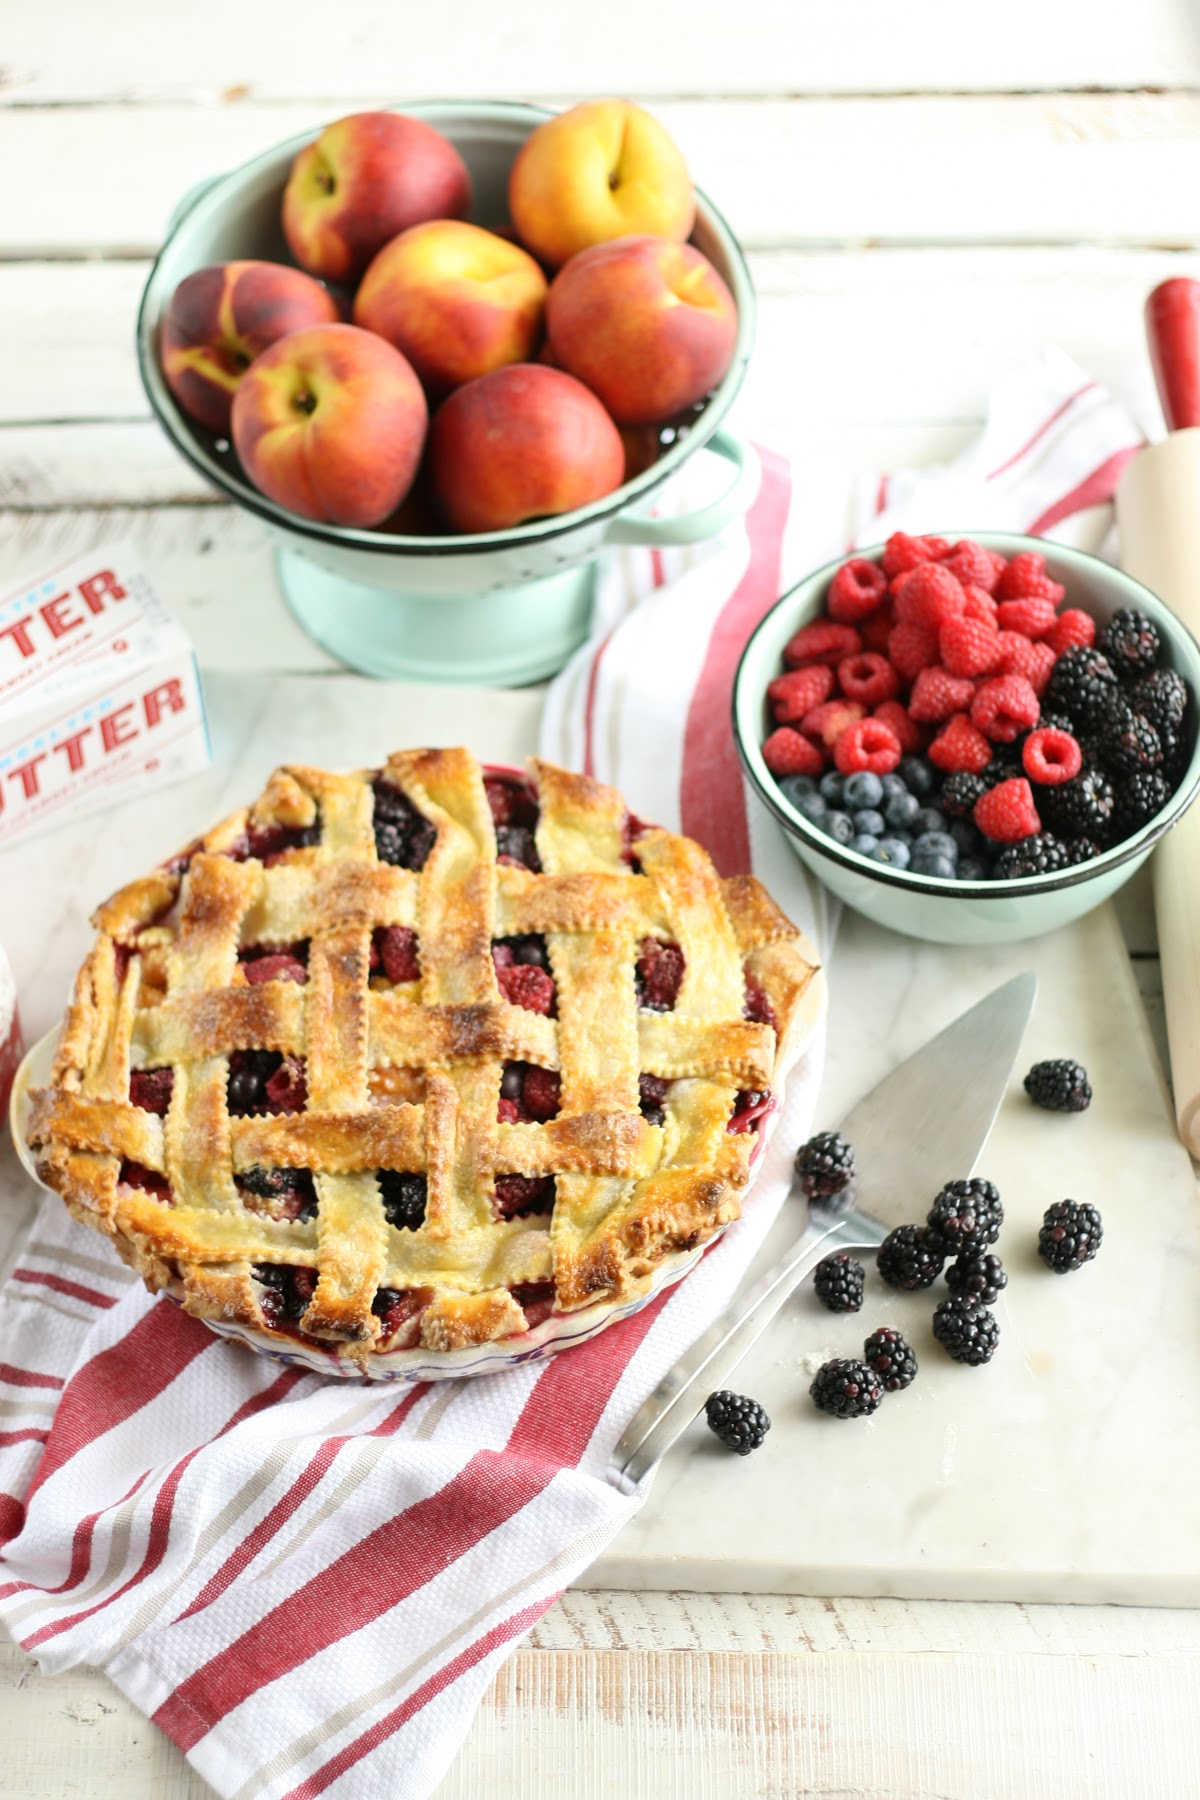 berry pie with lattice crust in blue floral pie dish, fruit in mint green enamelware strainer.